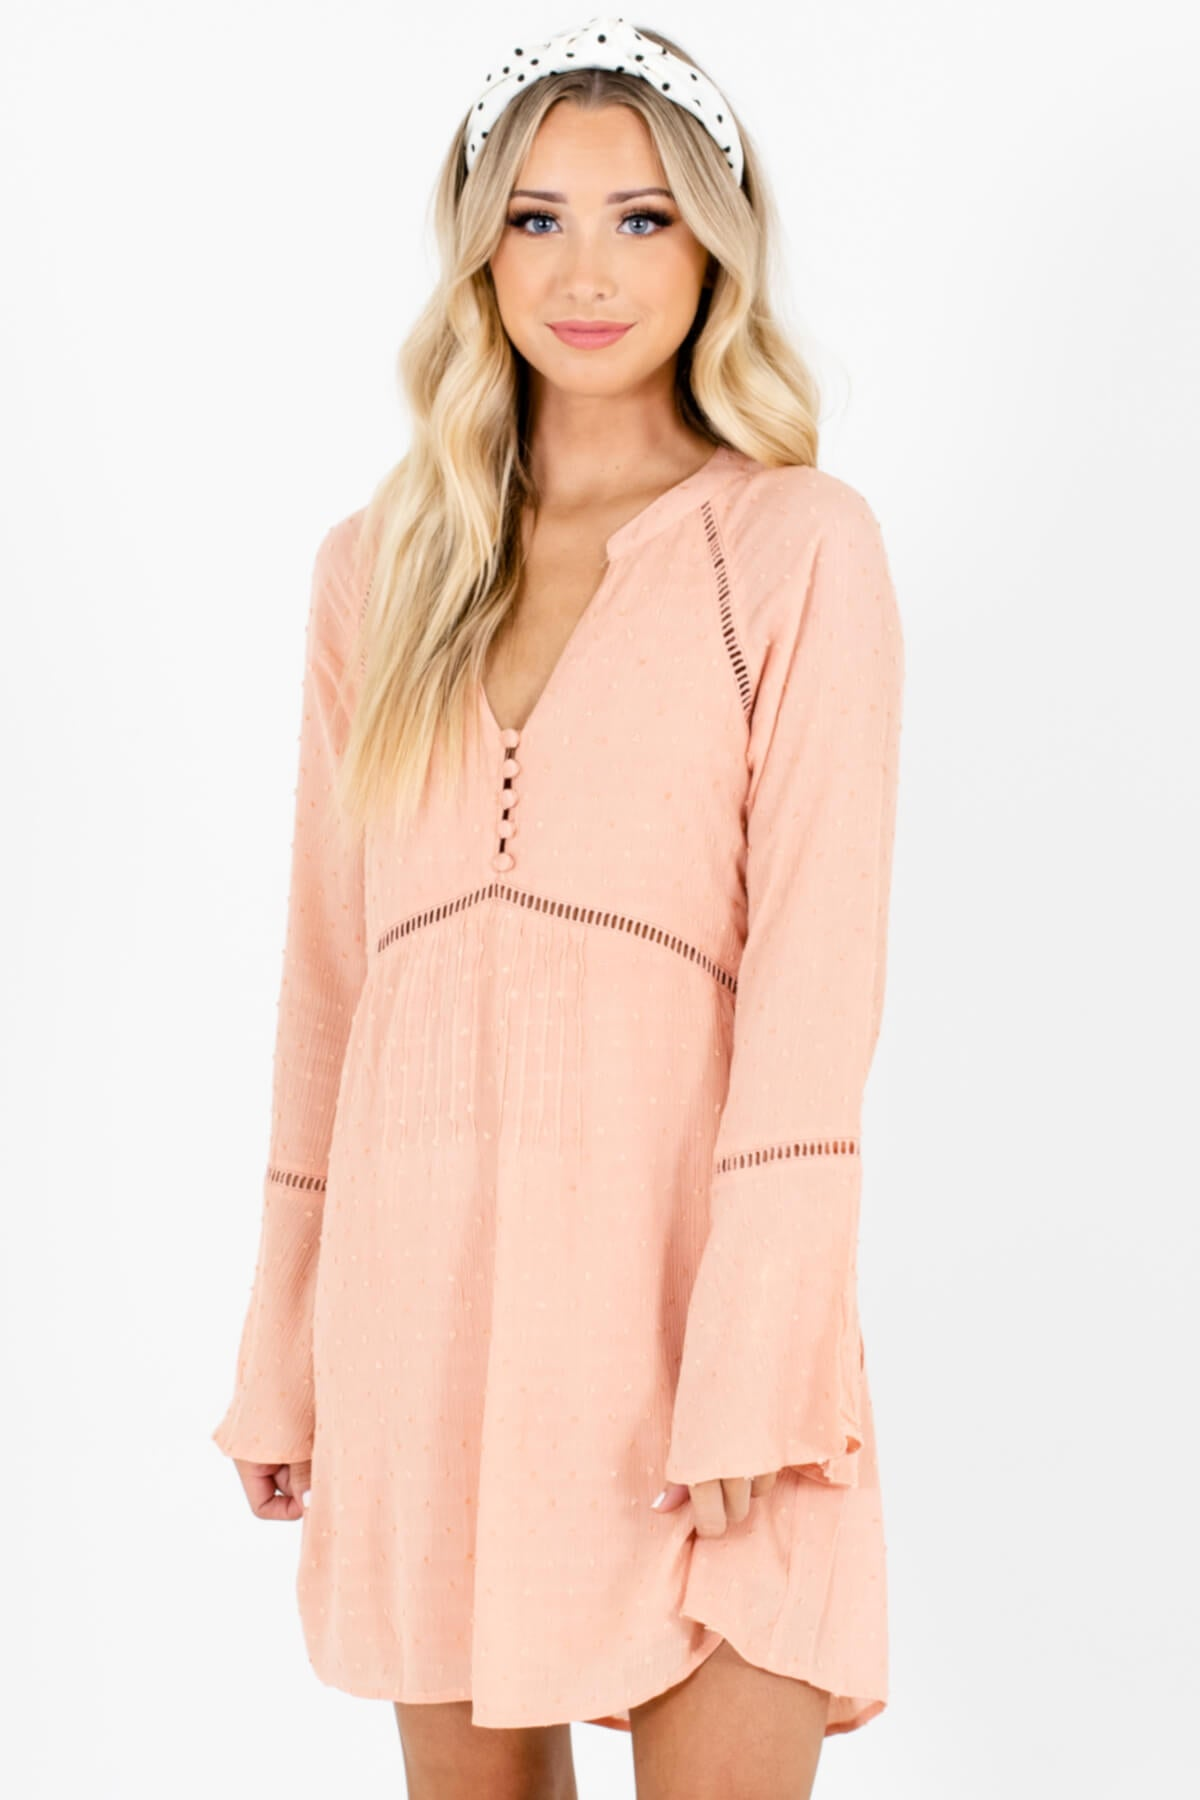 Pink Ladder Lace Textured Polka Dot Mini Dresses with Bell Sleeves